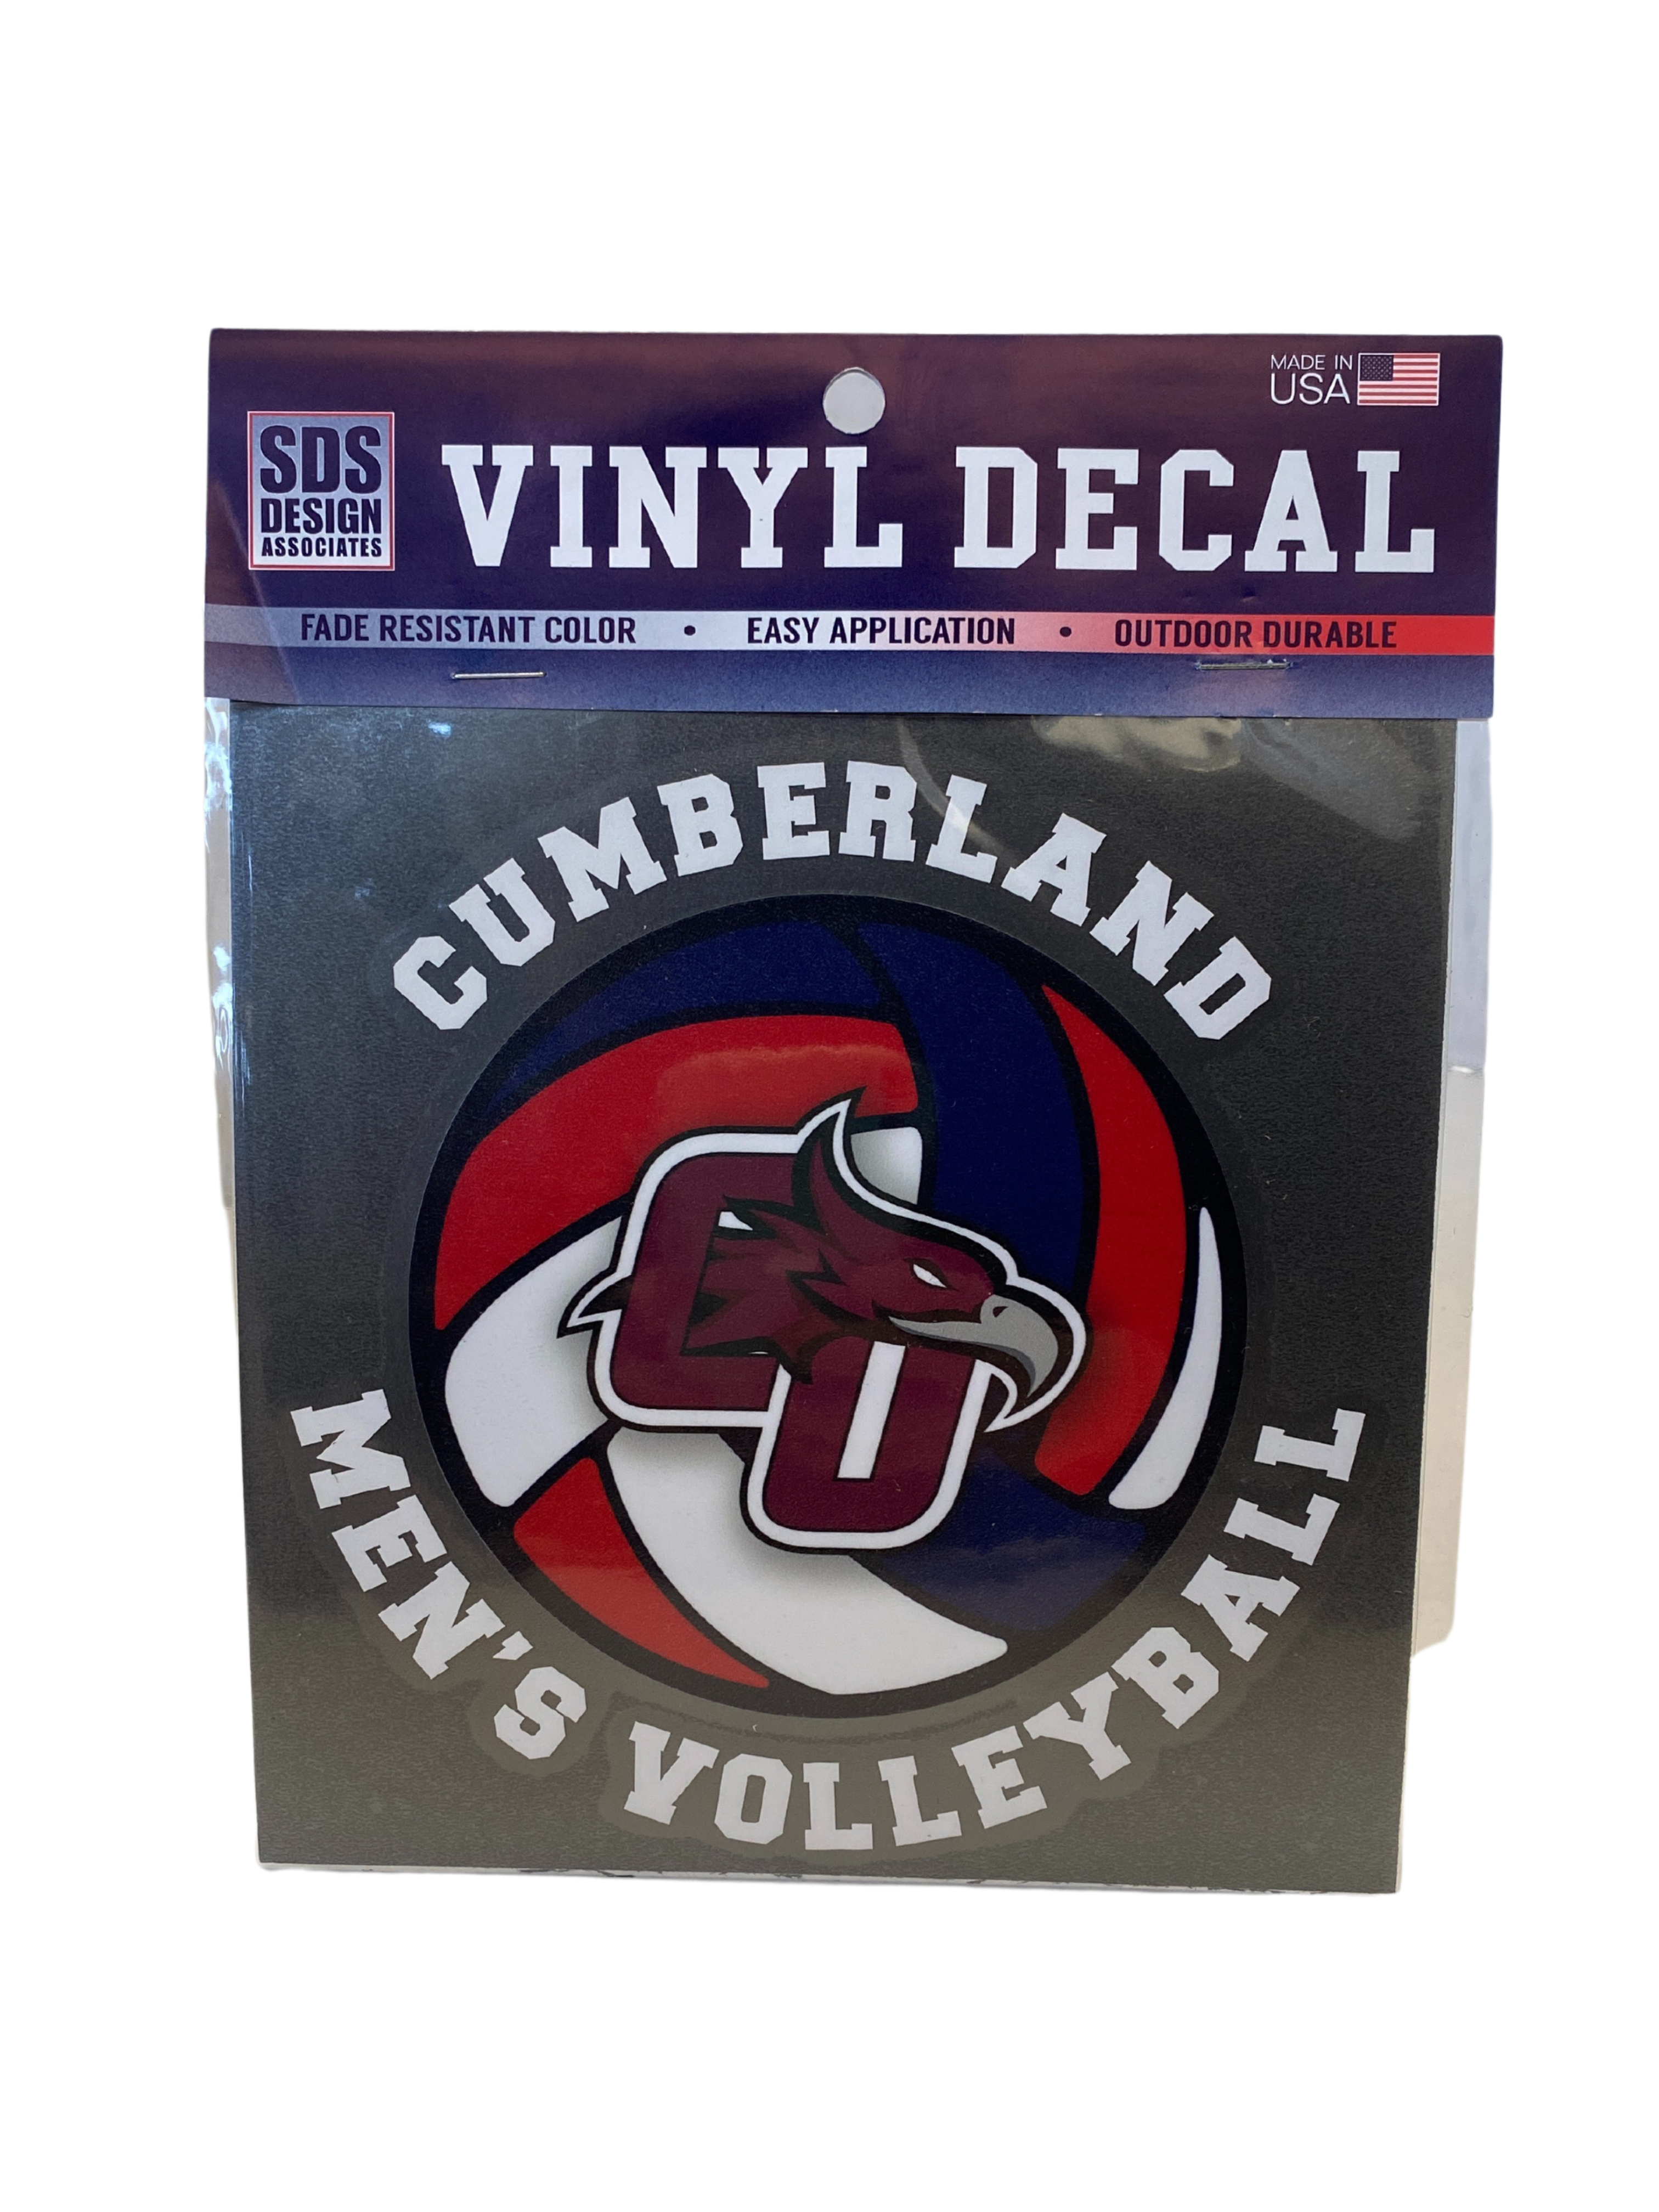 Cumberland Men's Volleyball Decal